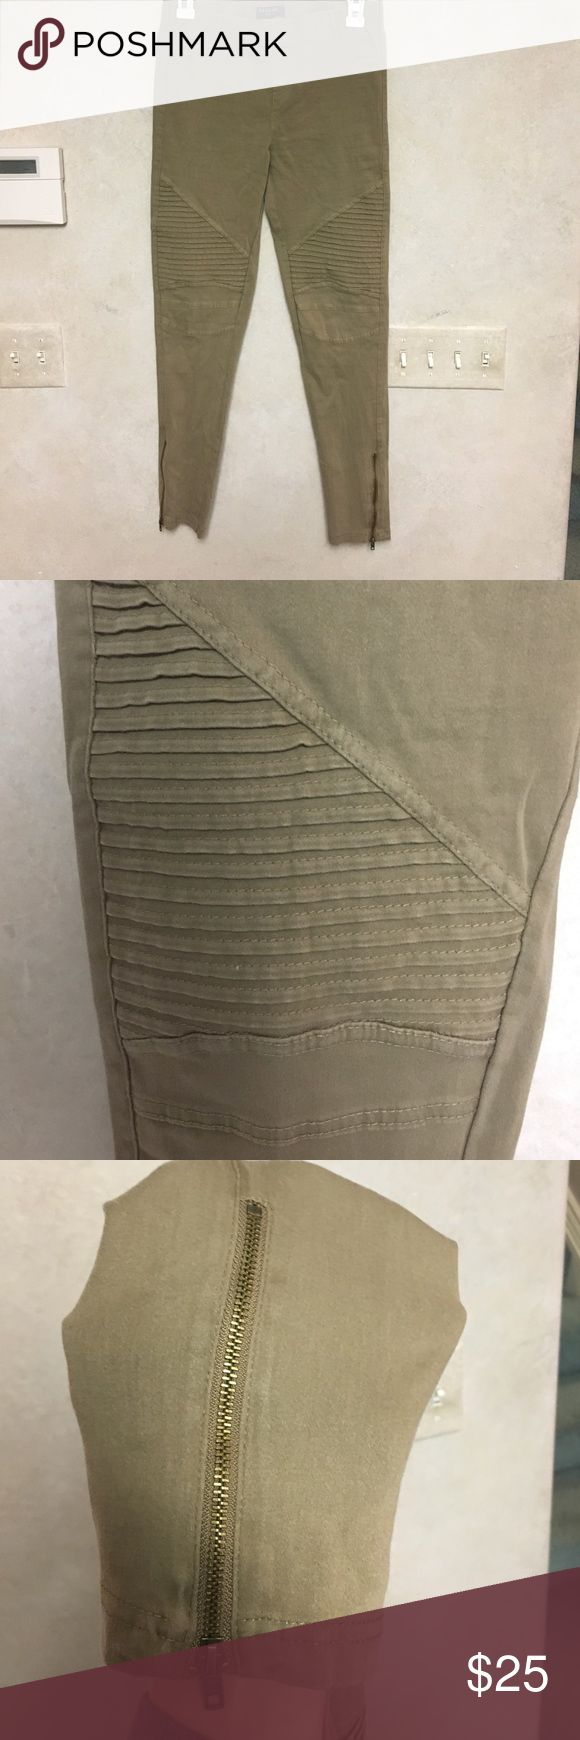 Moto leggings Moto style khaki leggings. With zipper detail and ribbed thigh/knee detail. Size large but fits more medium Jeans Ankle & Cropped